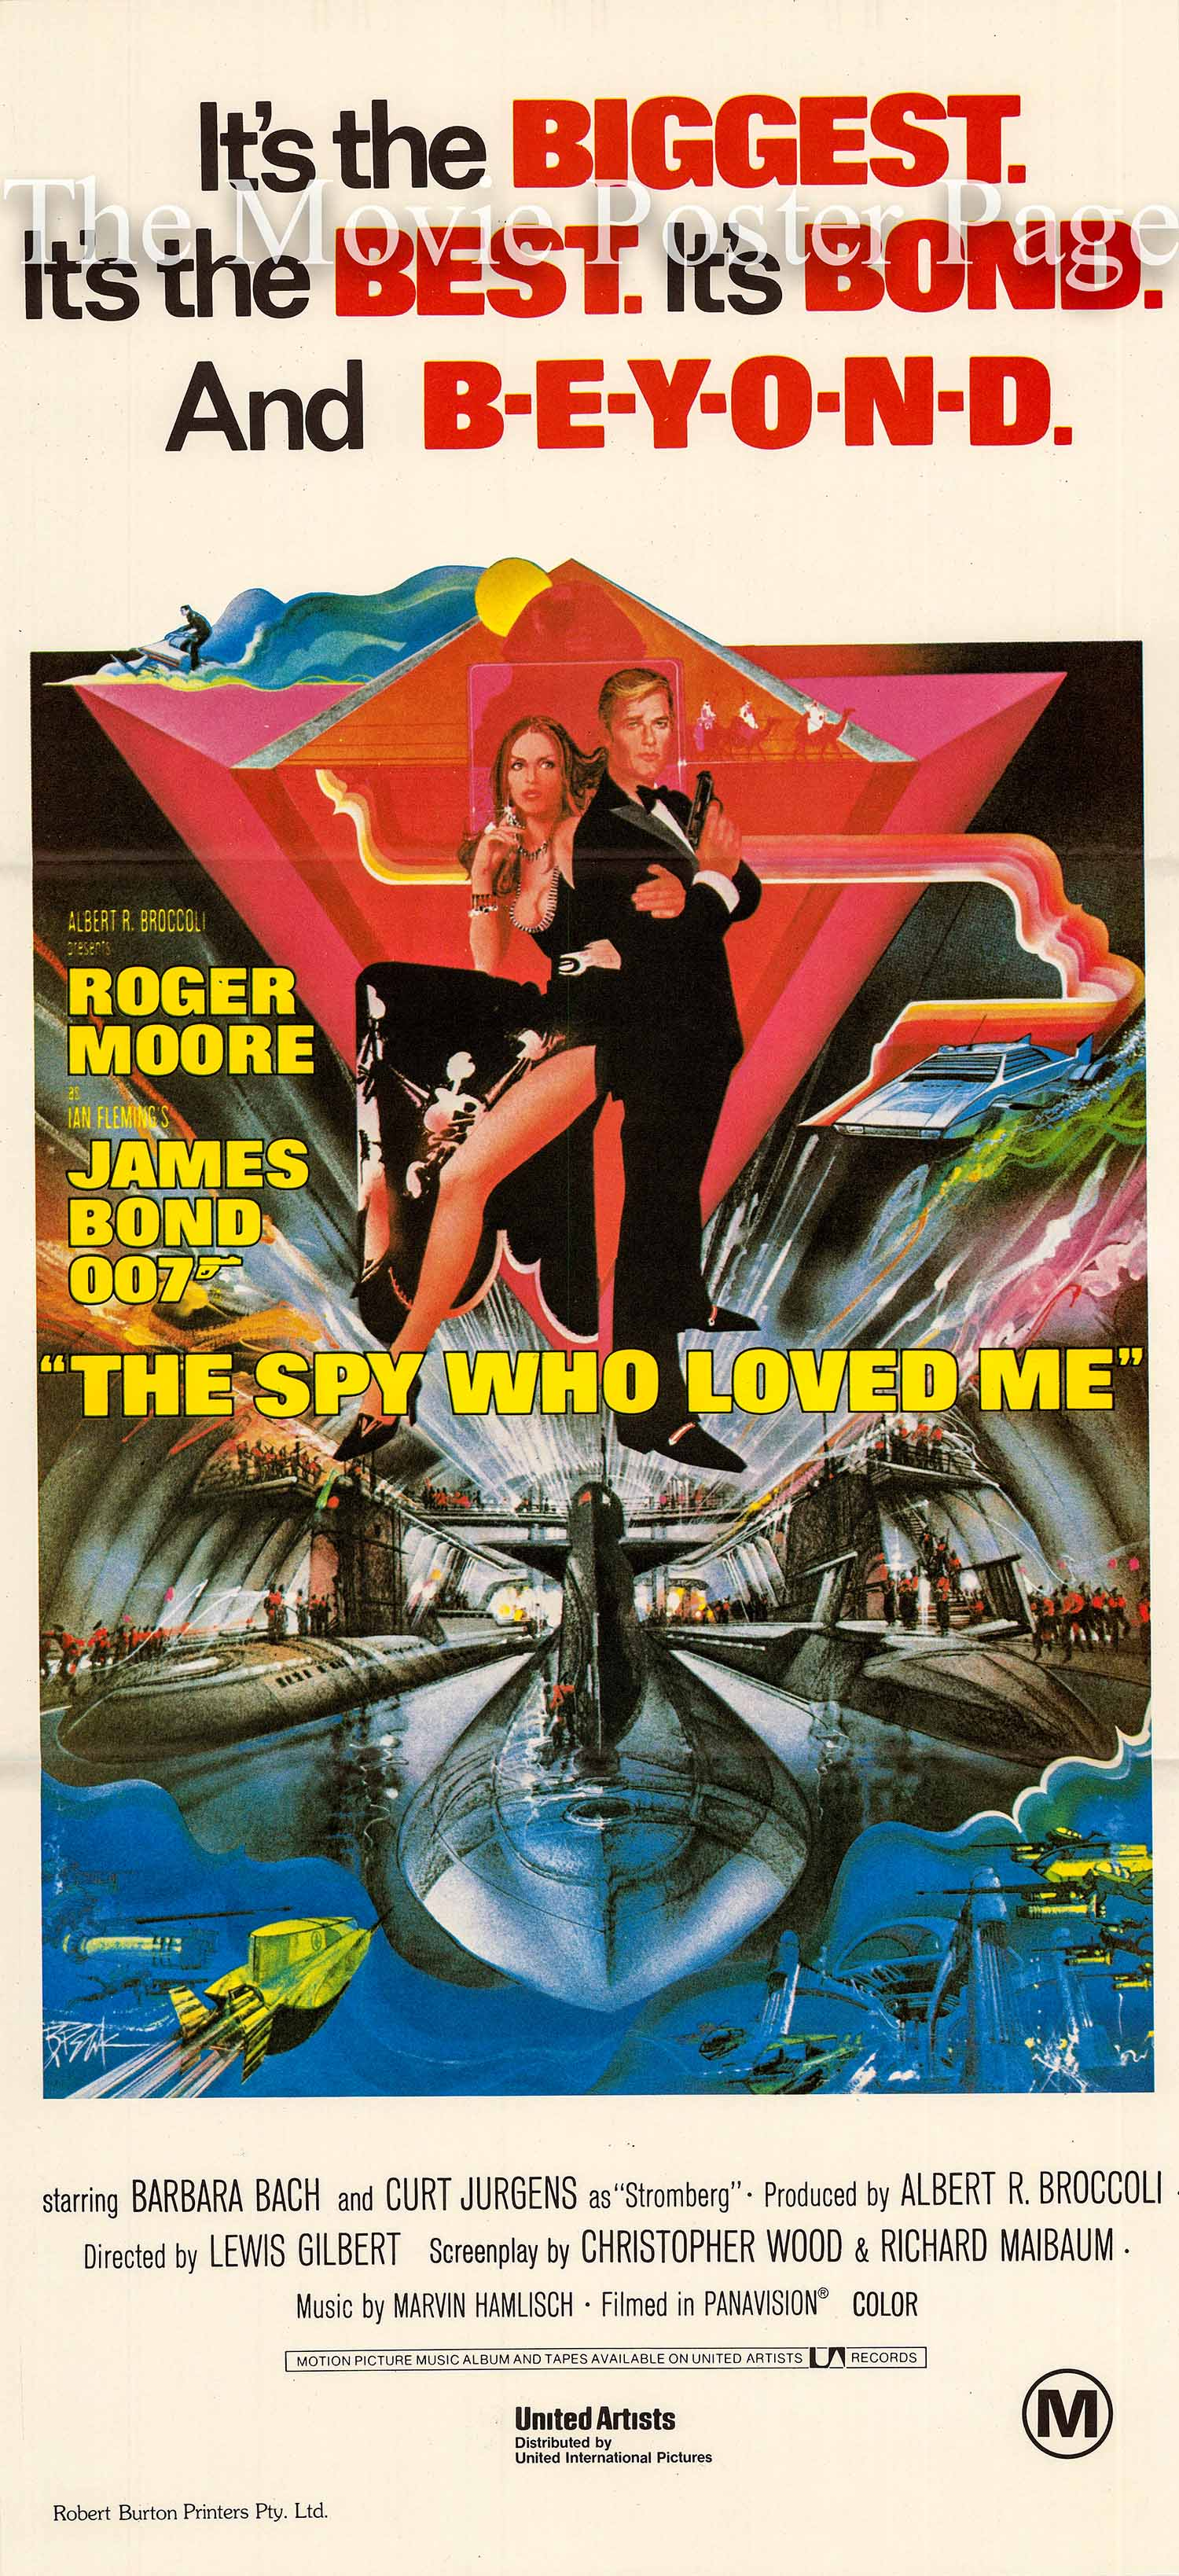 Pictured is an Australian day bill made to promote the 1977 Lewis Gilbert film The Spy Who Loved Me starring Roger Moore as James Bond.